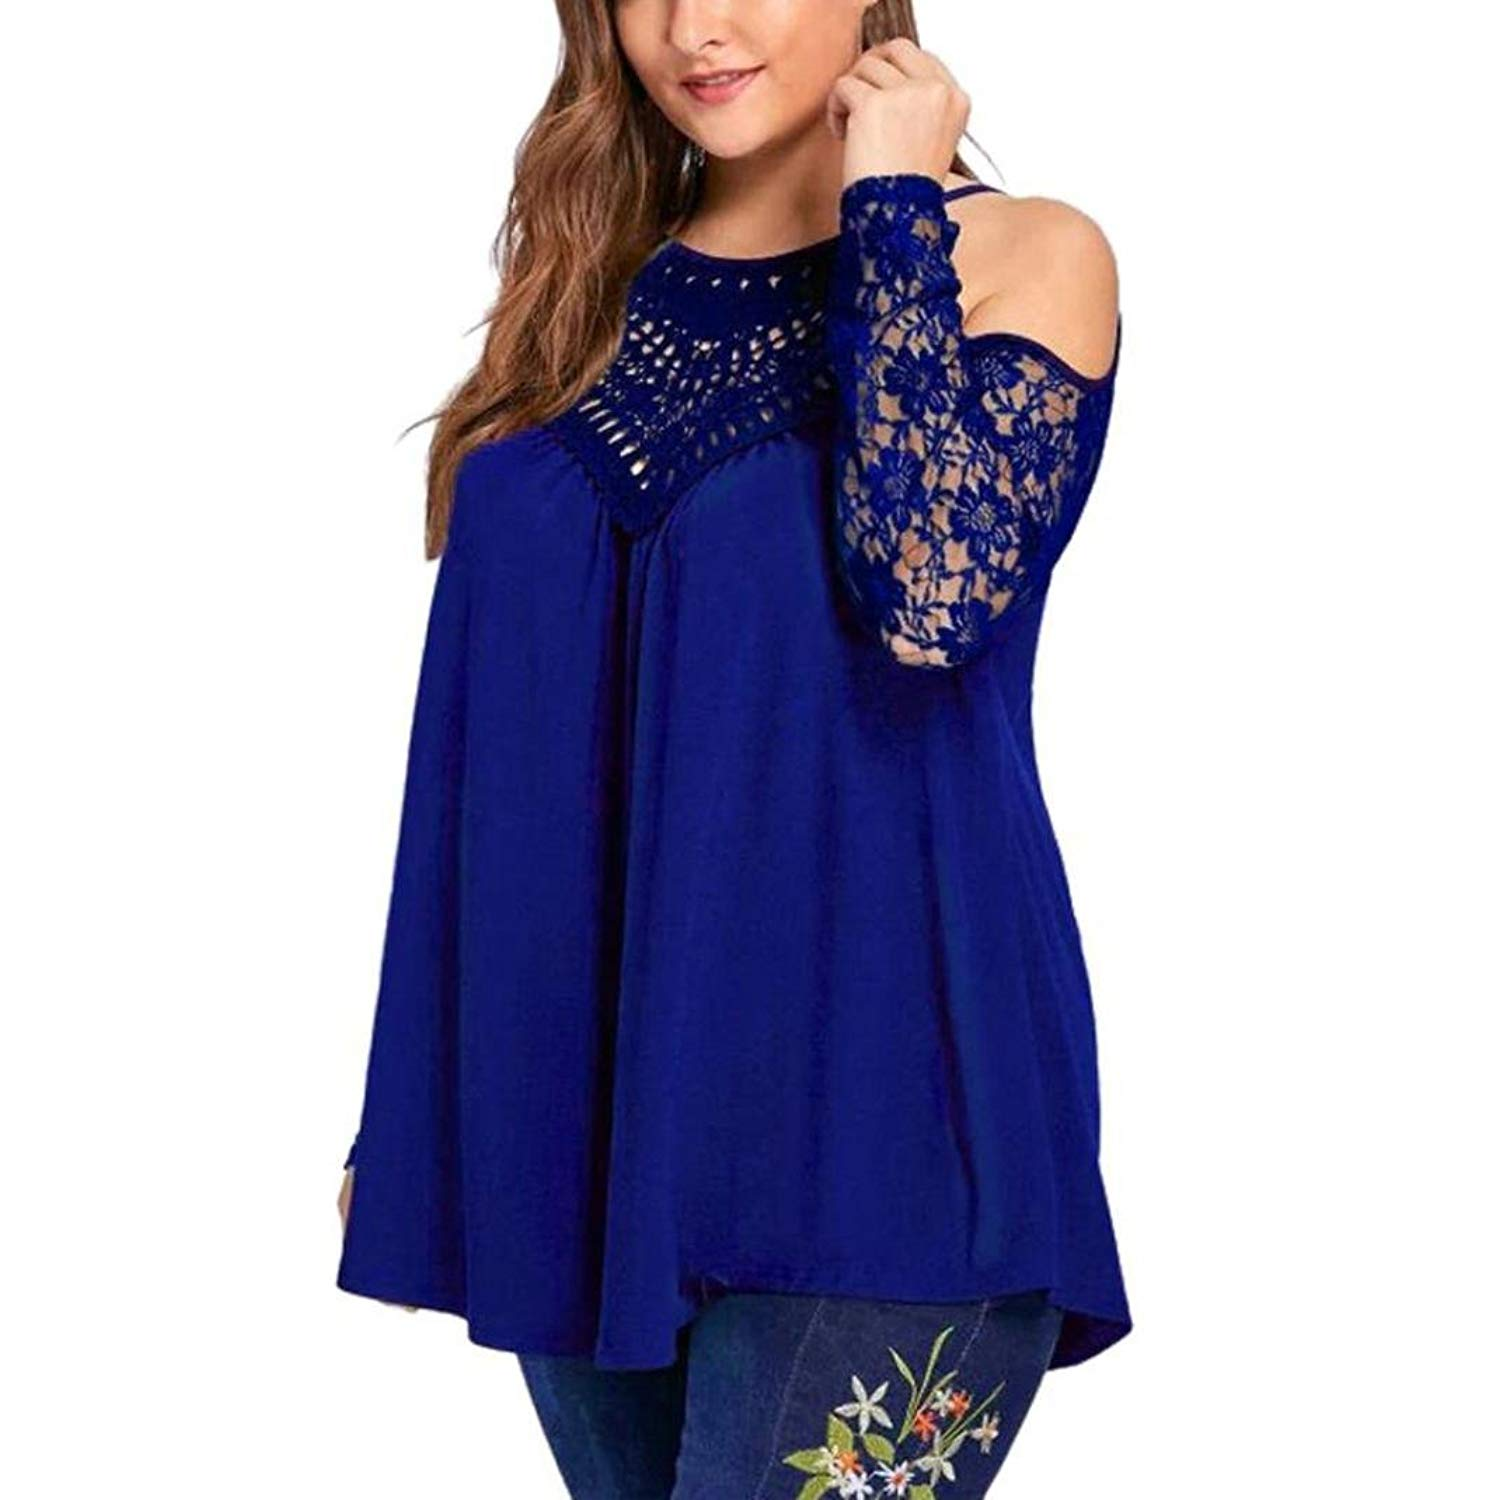 60271d45 Get Quotations · Women Blouse,Haoricu Clearance!Fashion Womens Sexy  Strapless Pullover Plus Size Lace Blouse Long